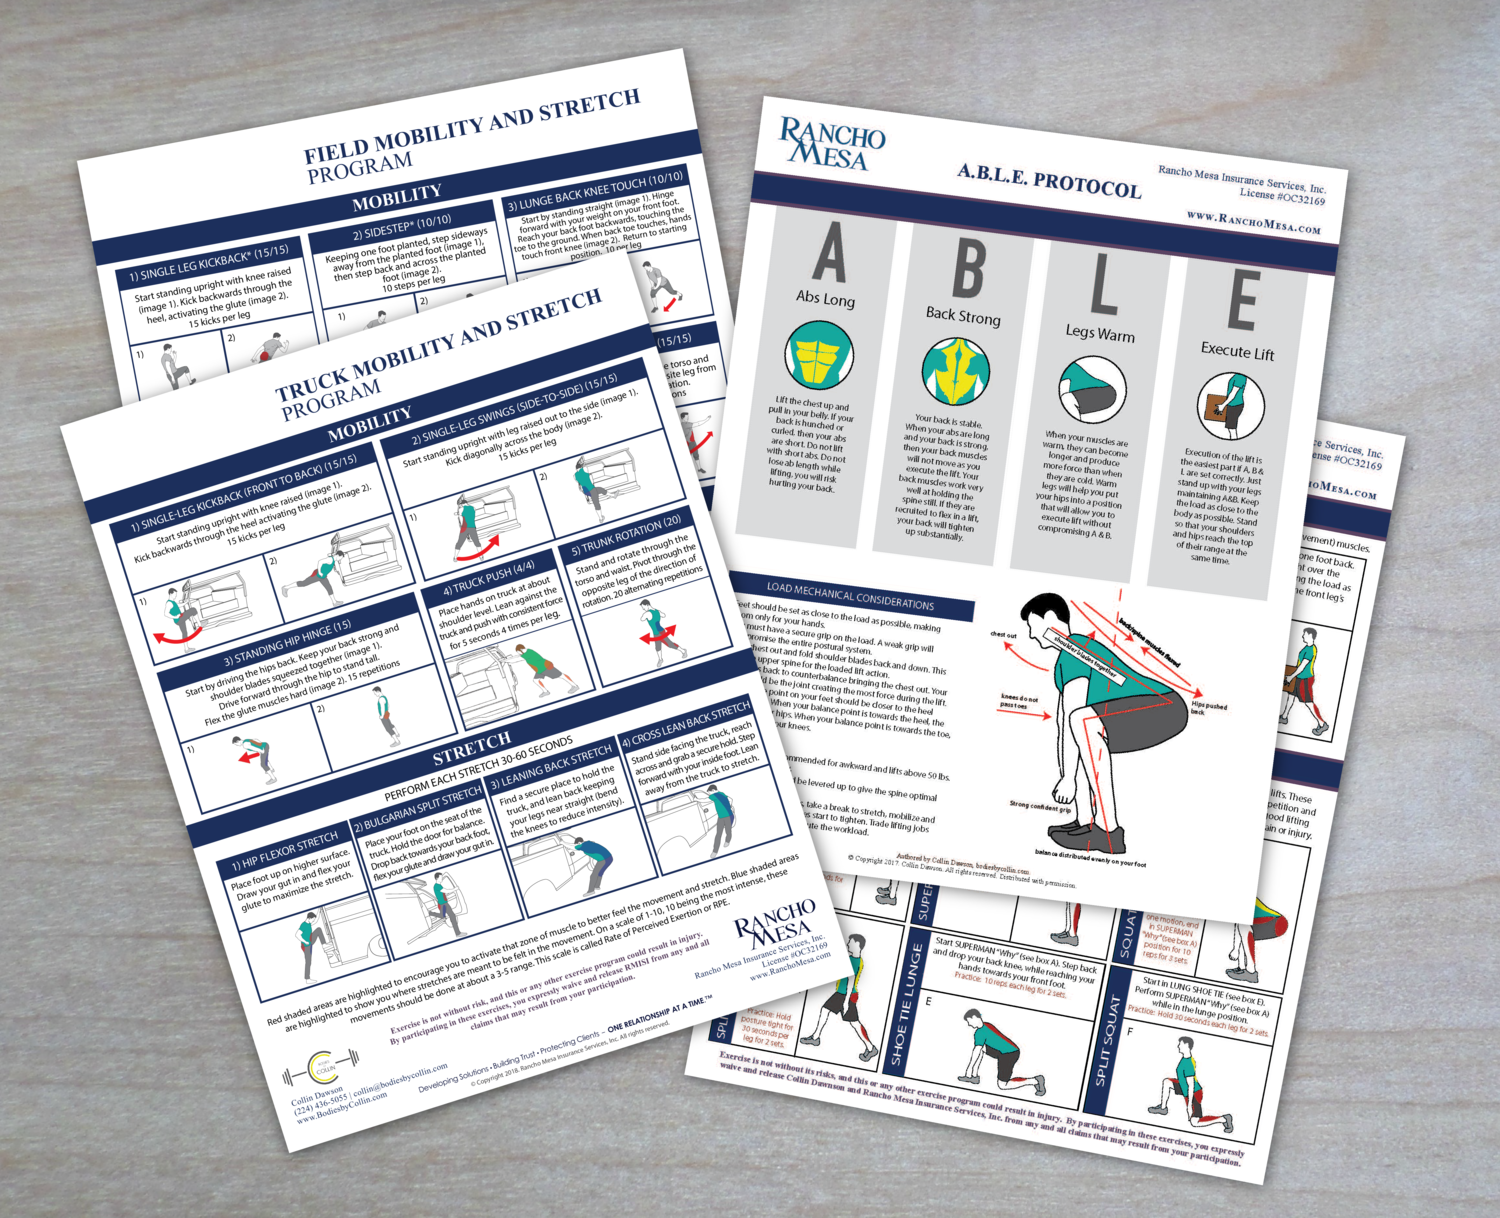 Mobility & Stretch Program and ABLE Lift Protocol — Rancho